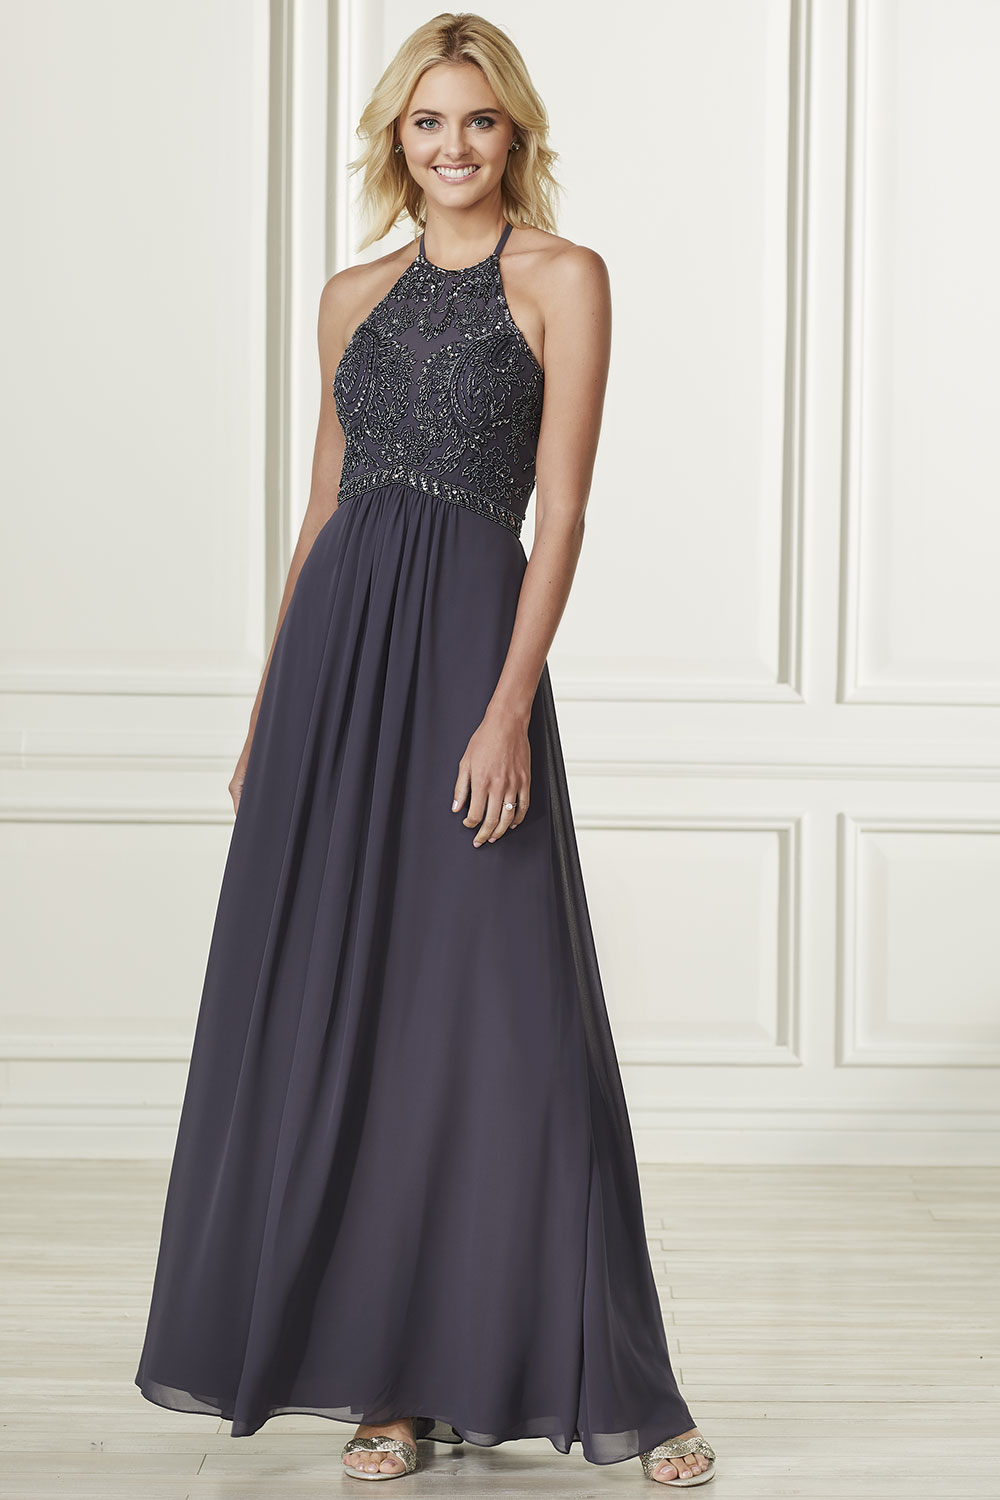 bridesmaid-dresses-adrianna-papell-platinum-26916